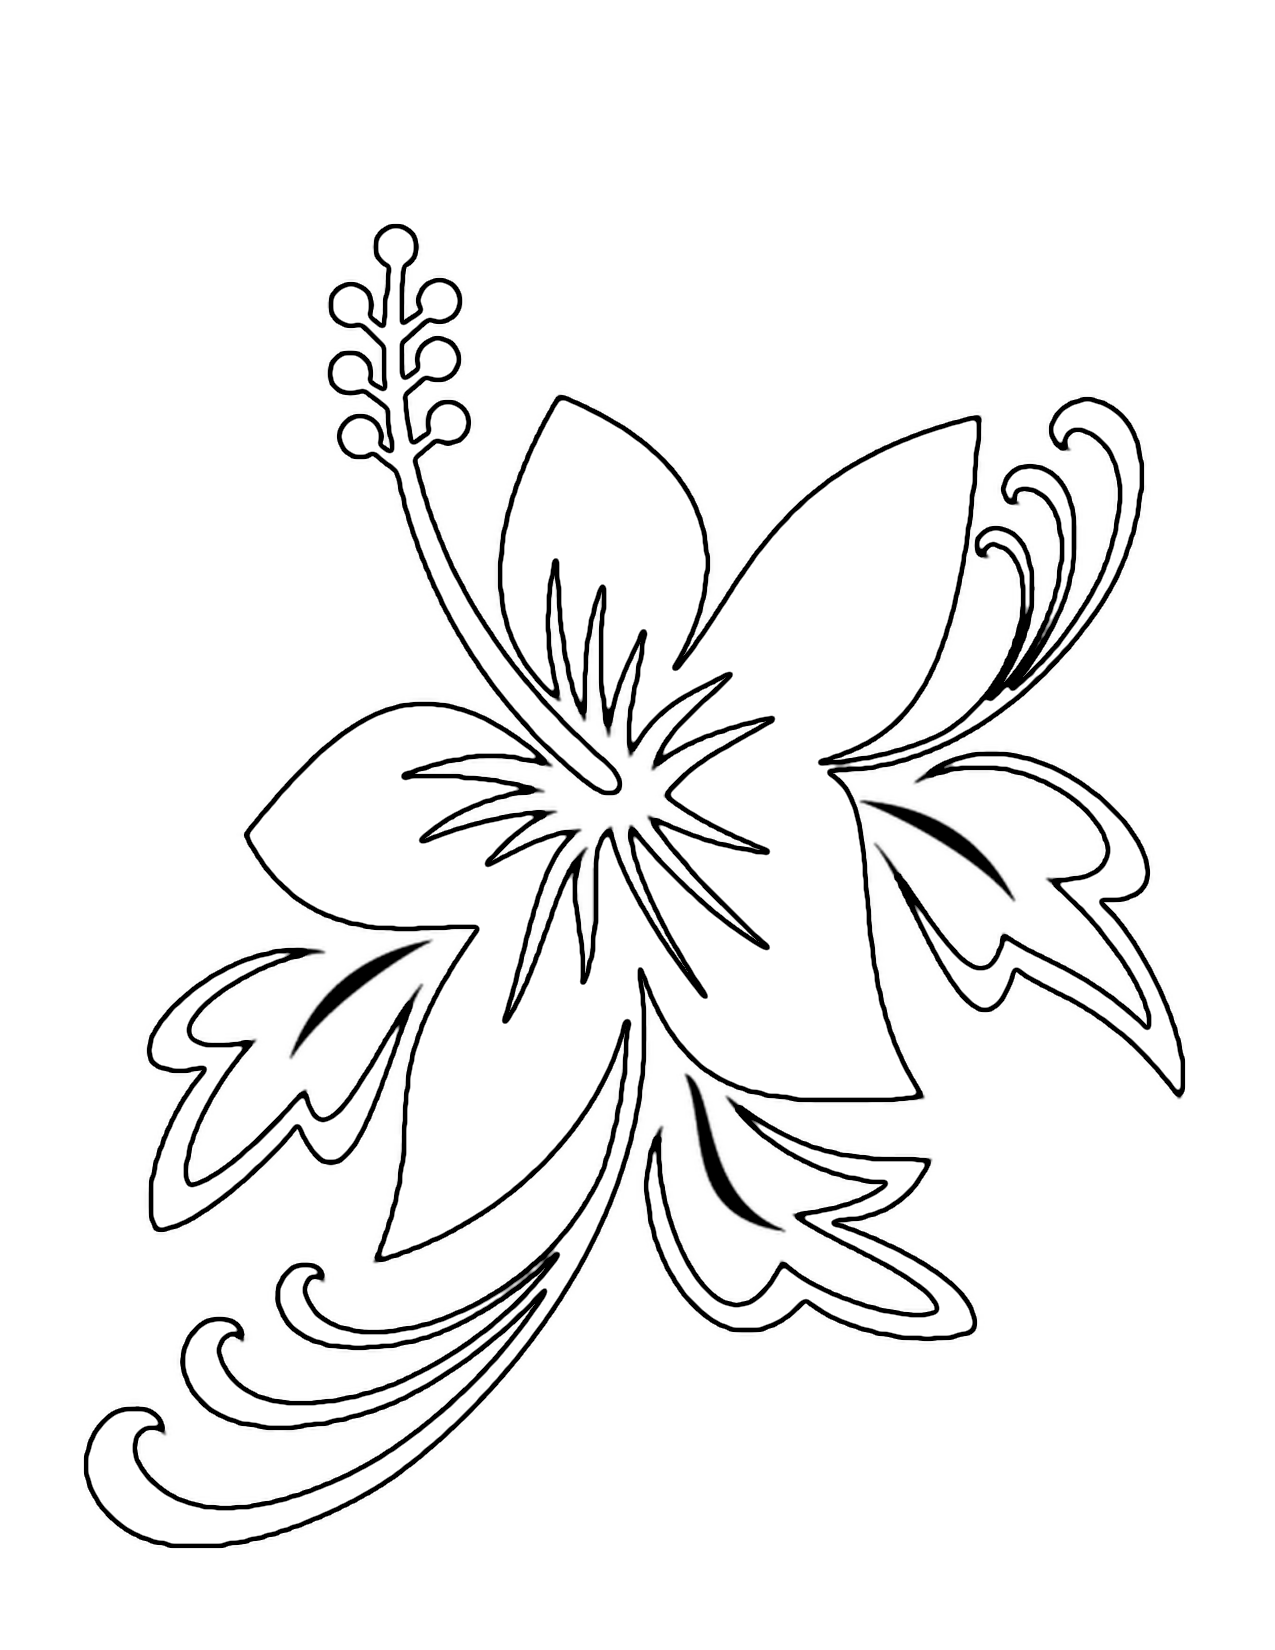 Drawn hibiscus hawaii flower Flower Solution Flower Frangipani For